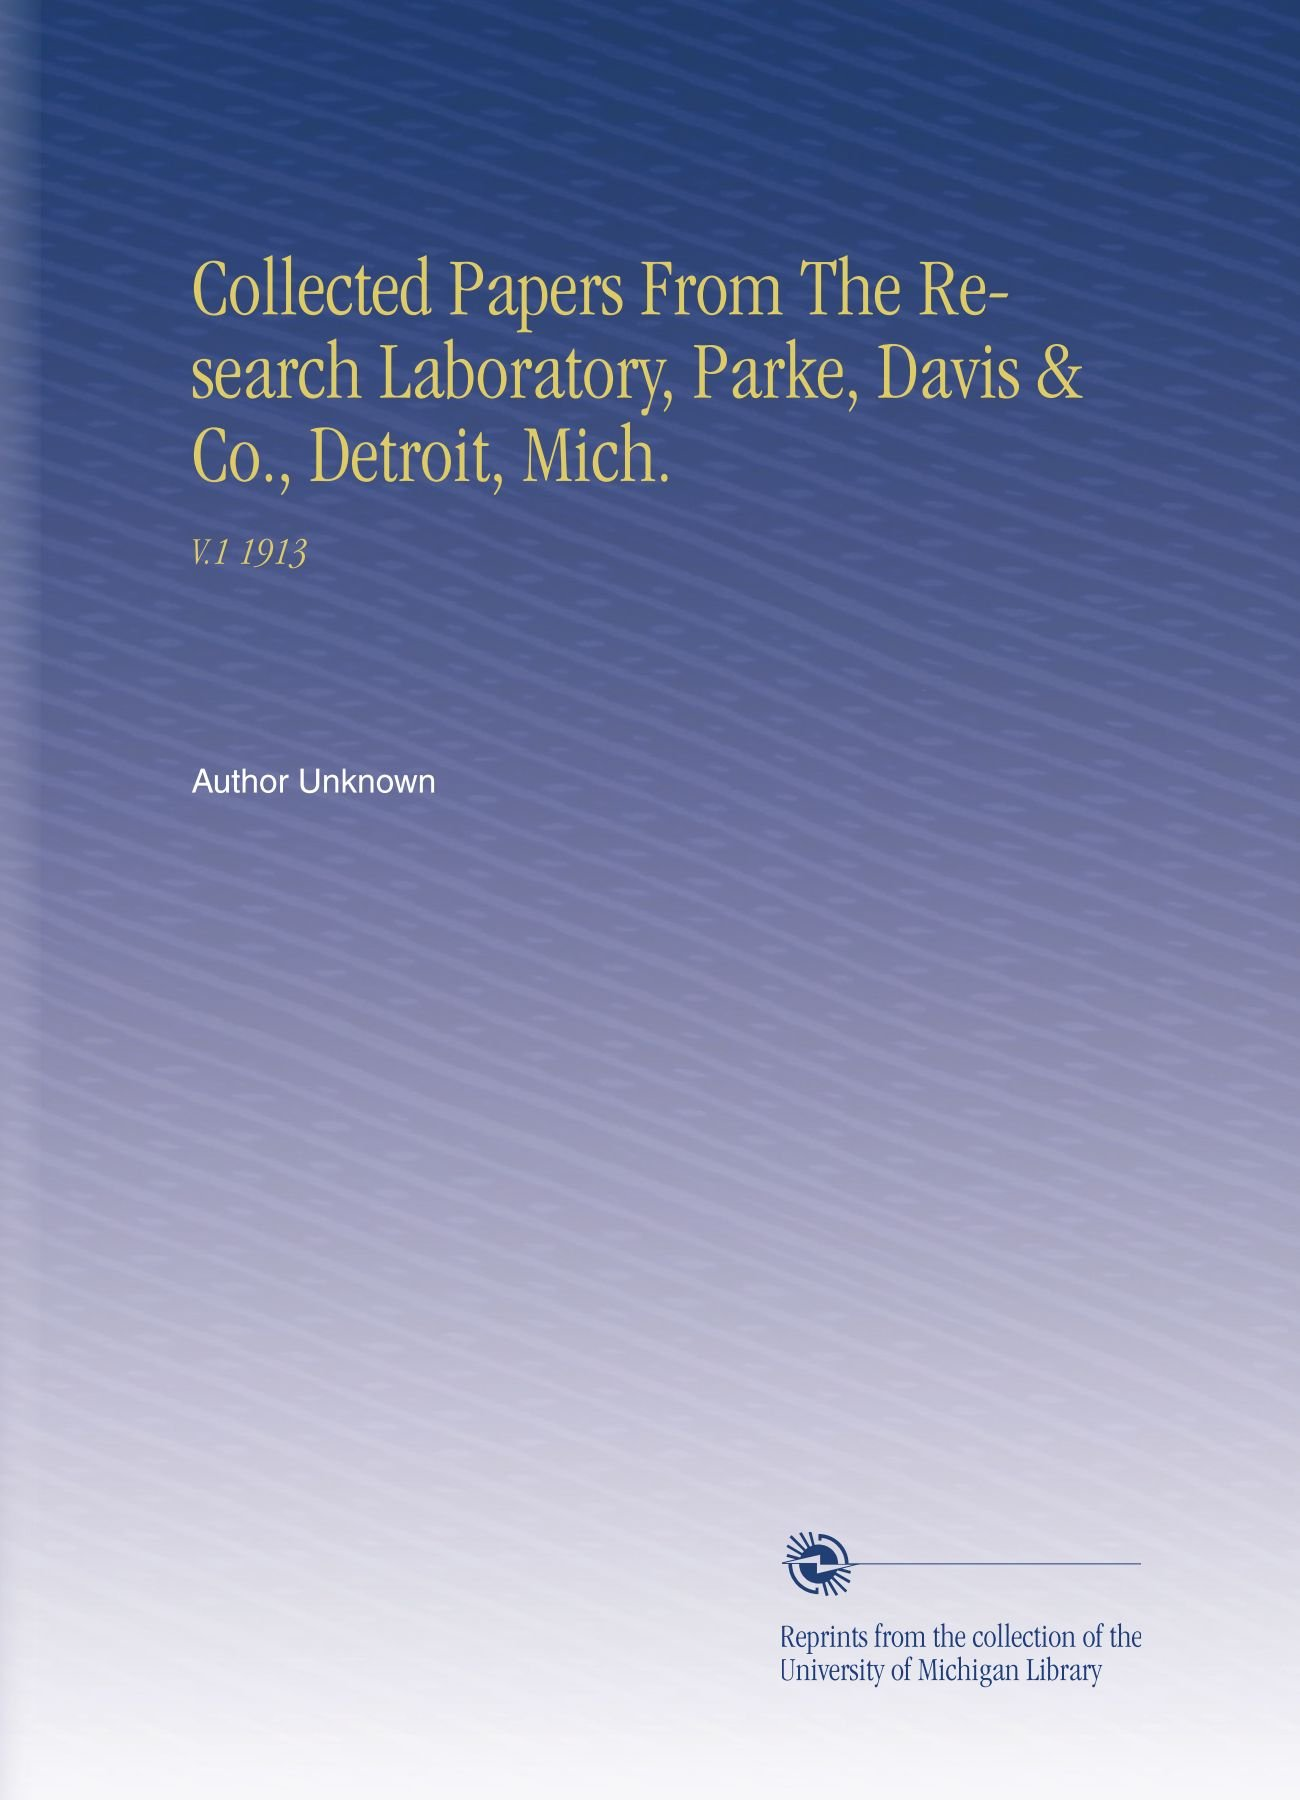 Read Online Collected Papers From The Research Laboratory, Parke, Davis & Co., Detroit, Mich.: V.1 1913 ebook